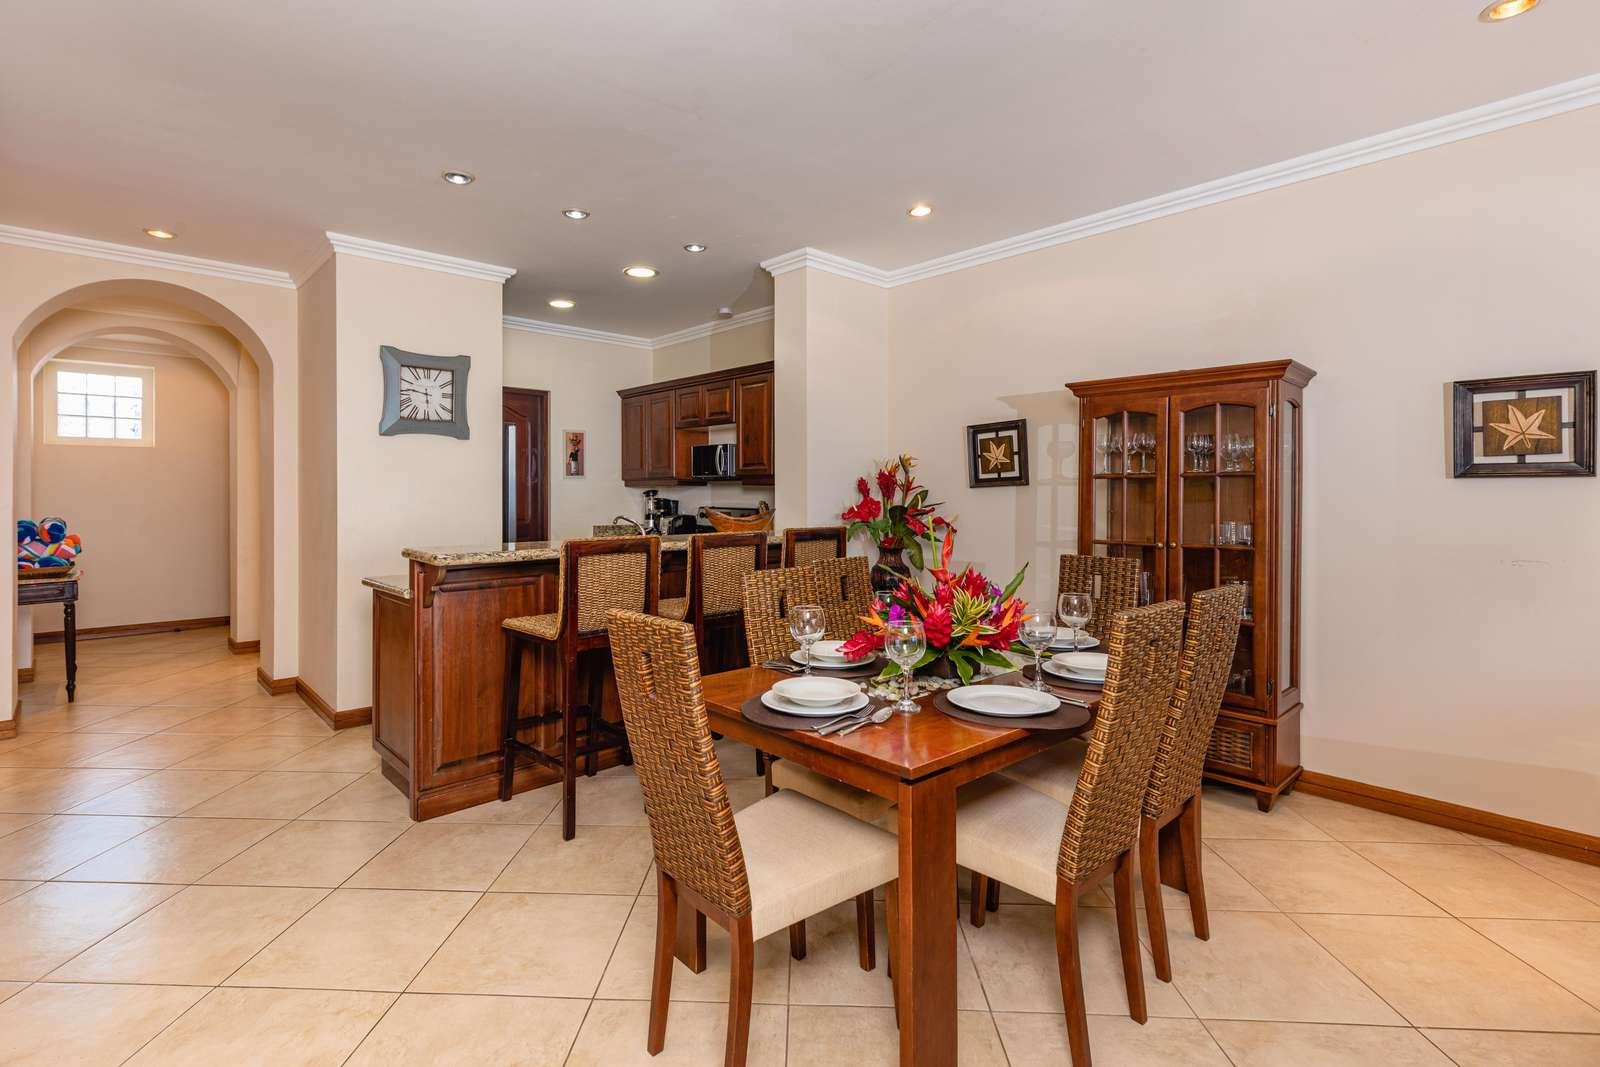 Dining area and view to kitchen